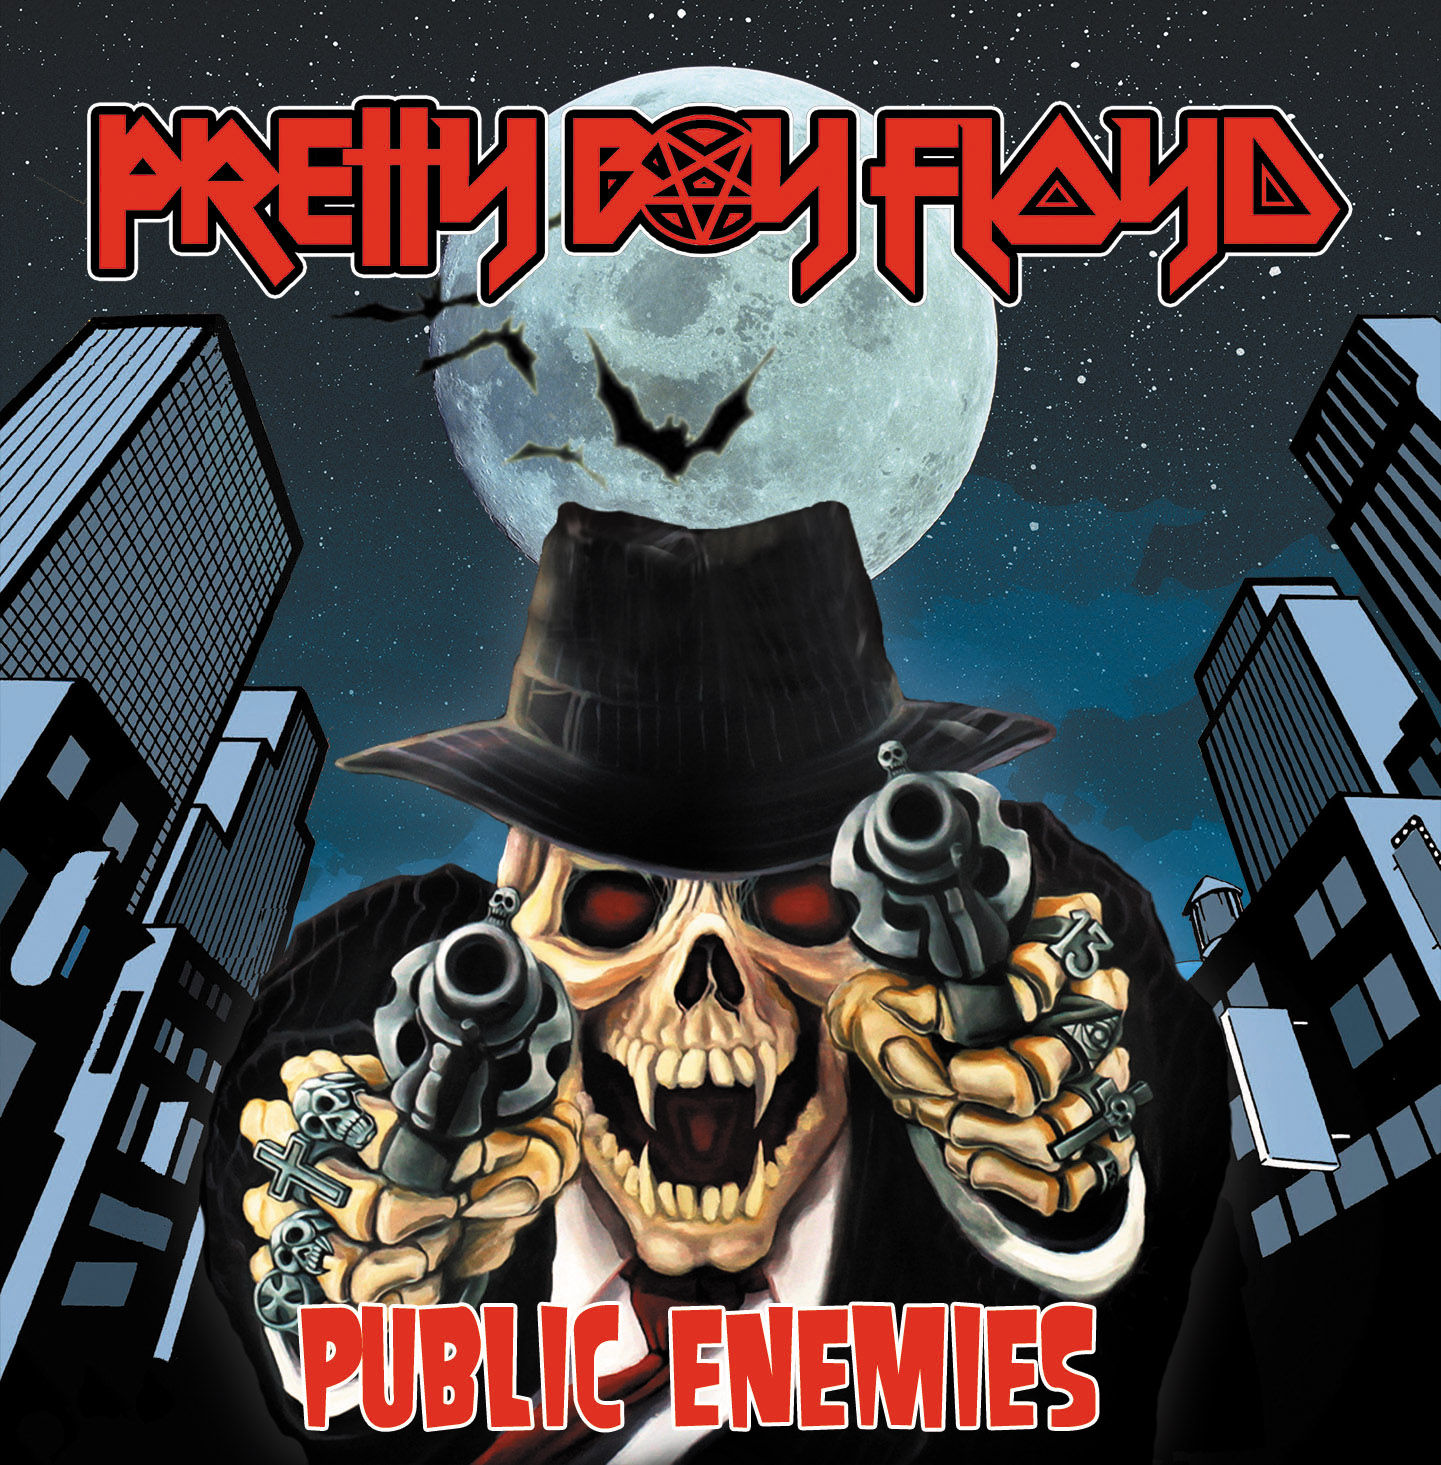 PRETTY BOY FLOYD pe Cover